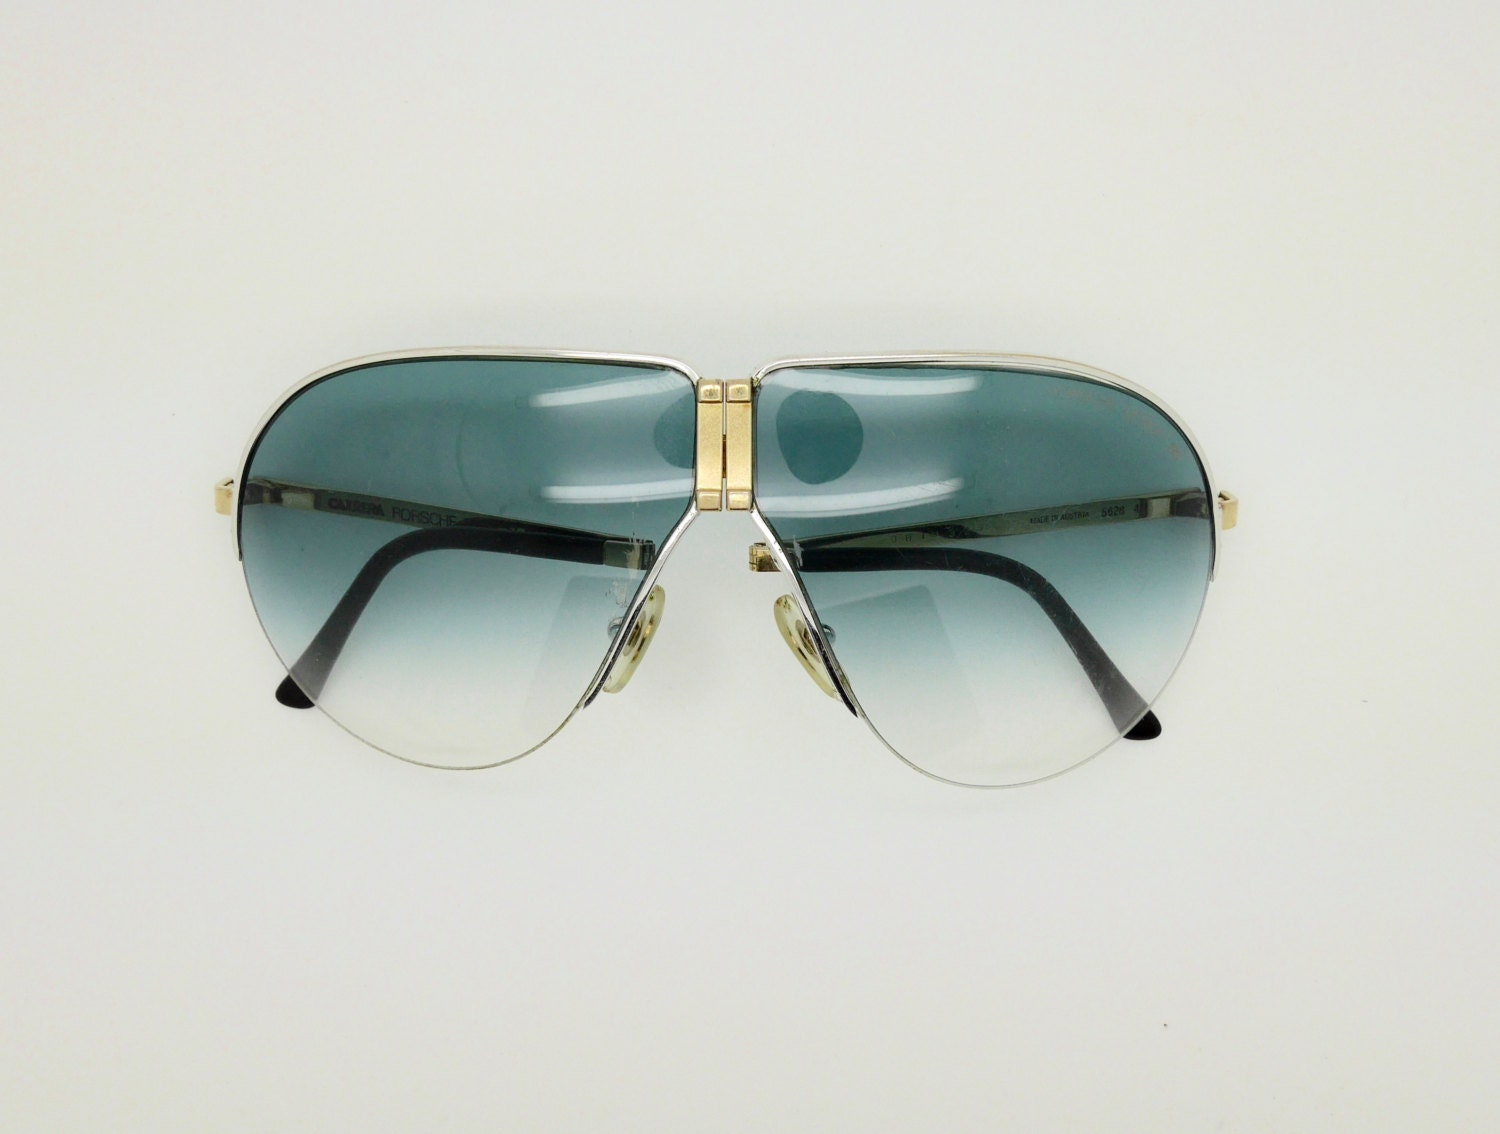 Vintage 80s Porsche Design 5628 41 Panorama Folding Glasses By